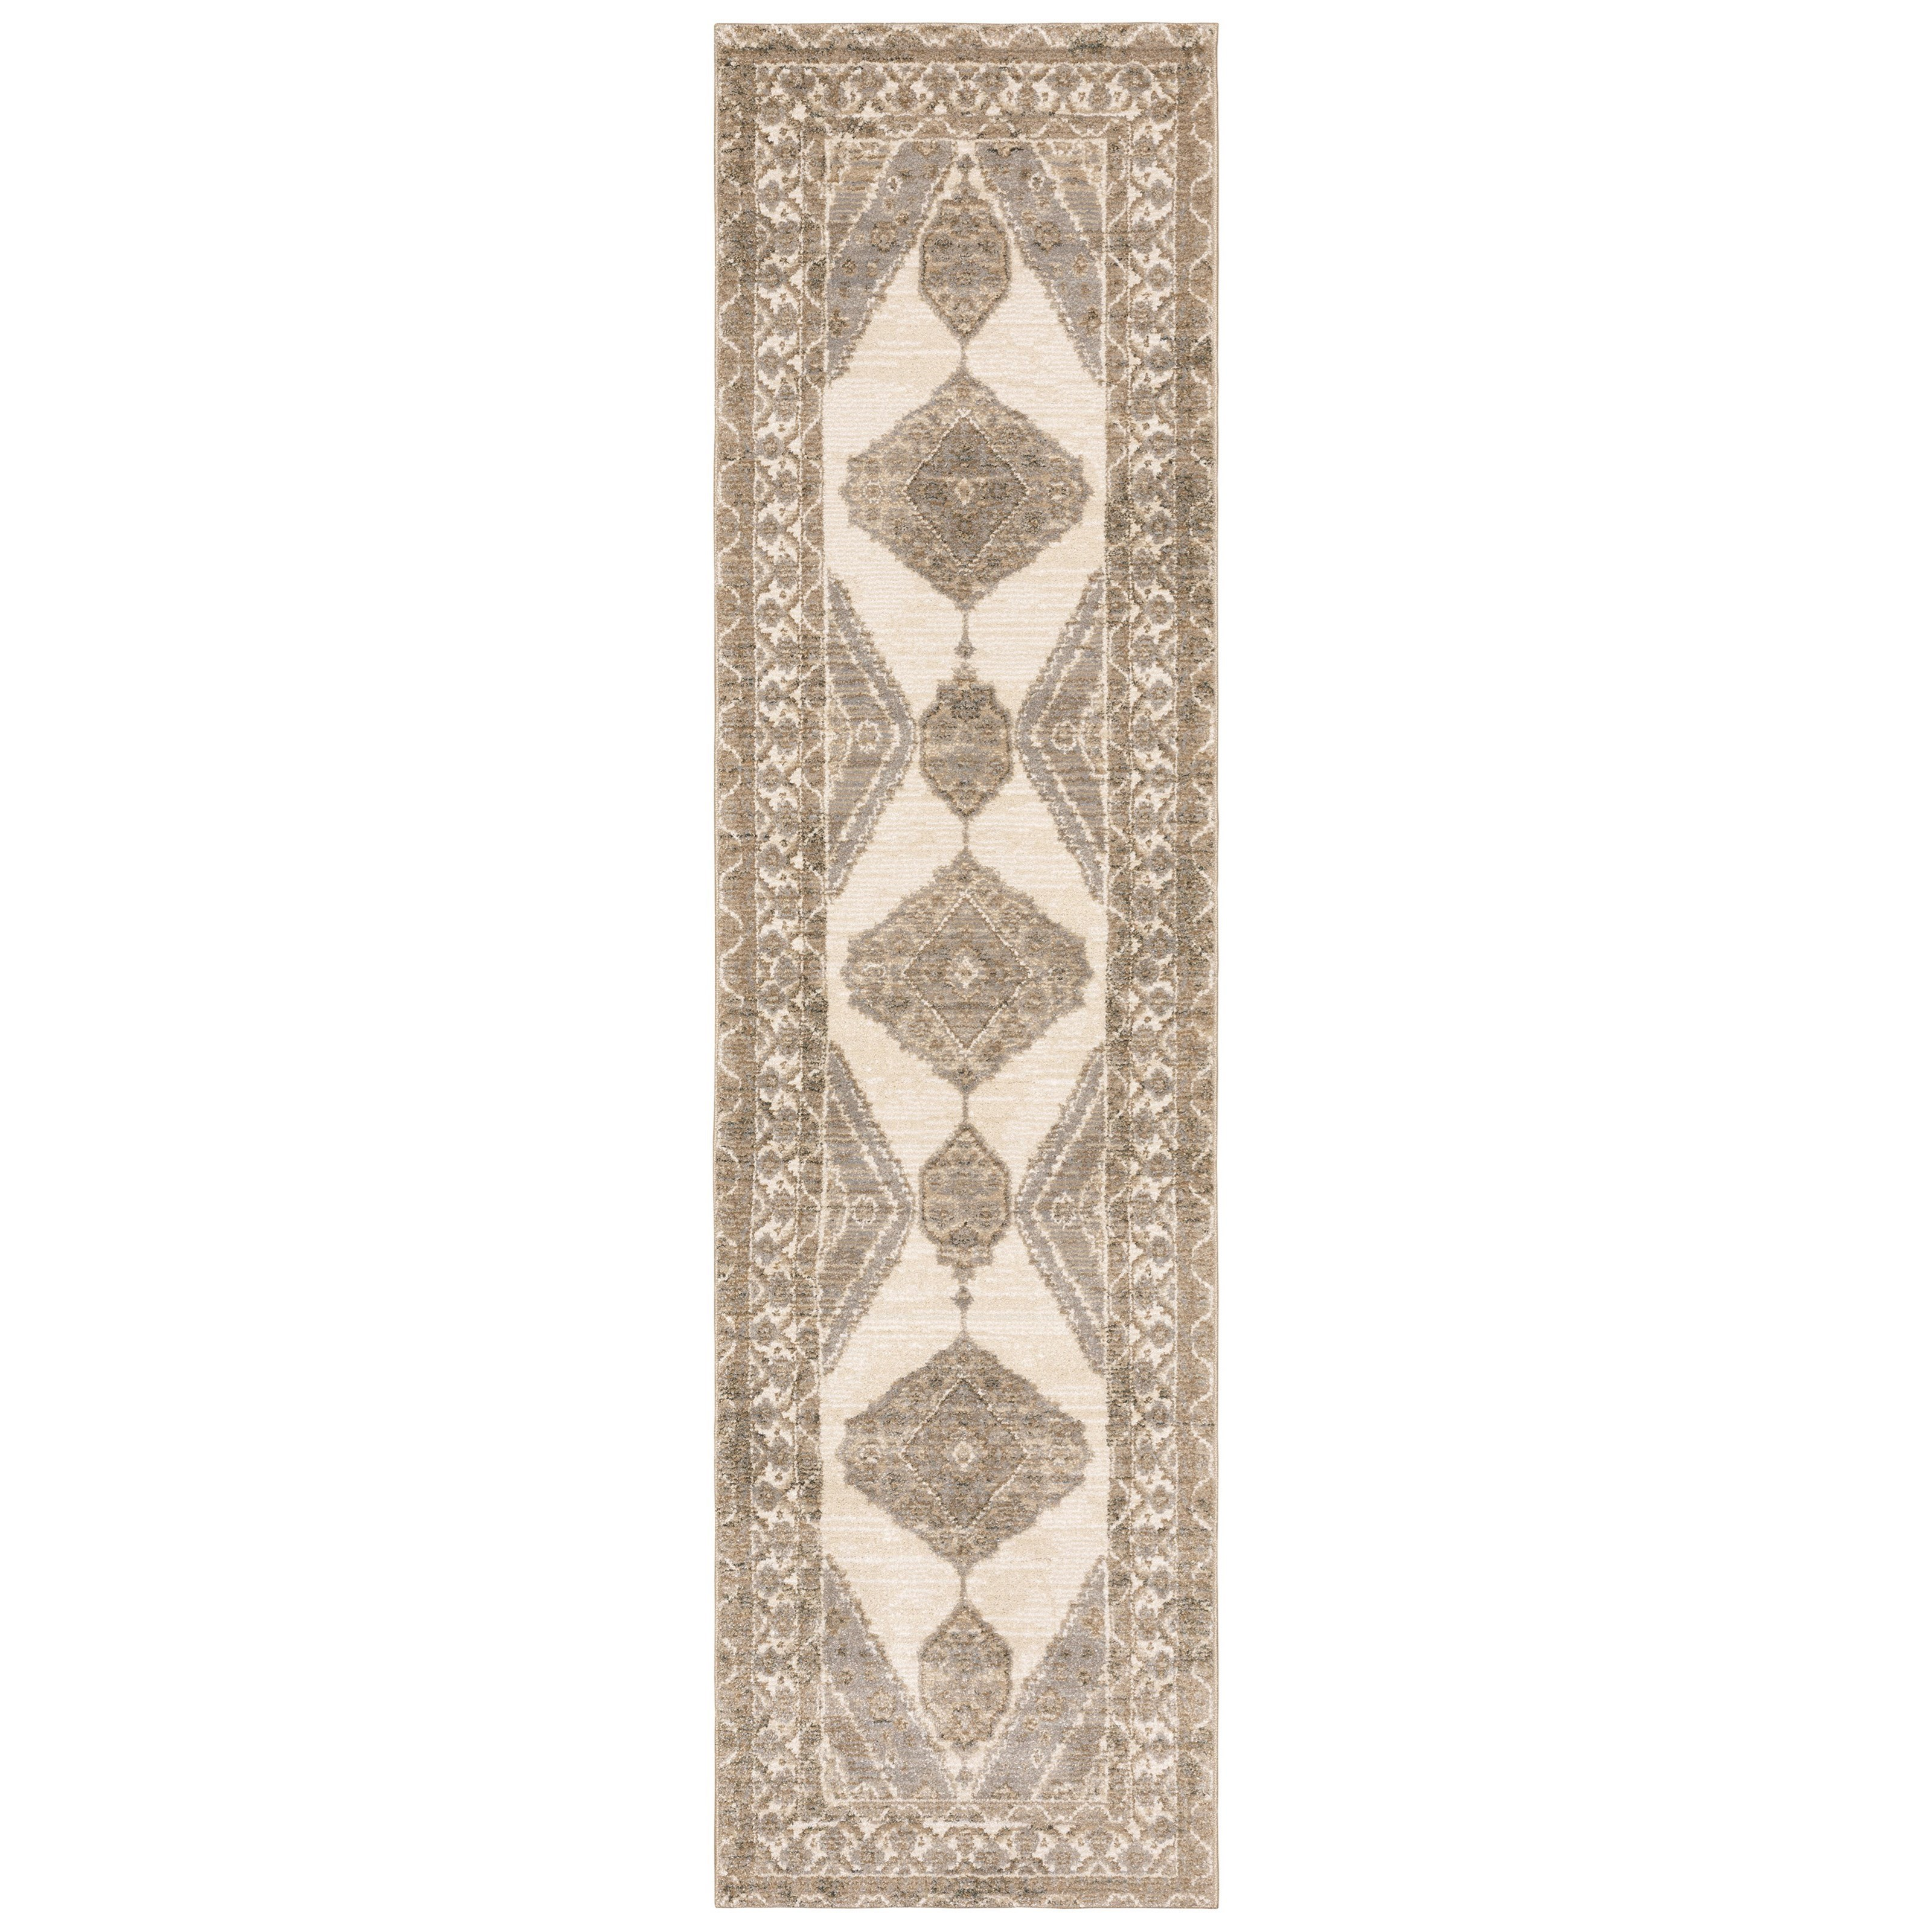 "Andorra 2' 6"" X 12' 0"" Runner Rug by Oriental Weavers at Steger's Furniture"